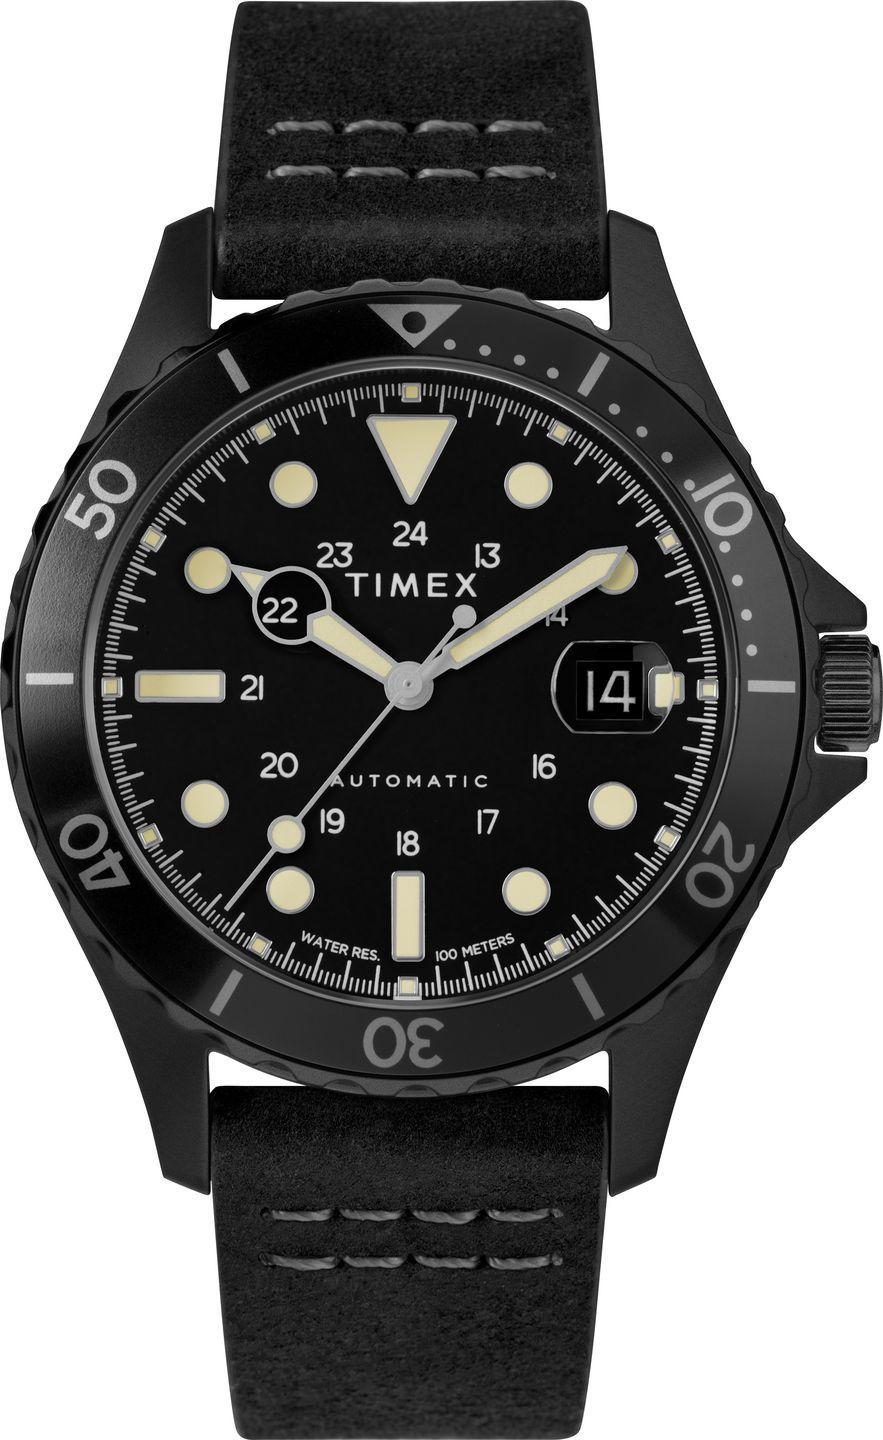 """<p>Navi XL Automatic 41mm</p><p><a class=""""link rapid-noclick-resp"""" href=""""https://www.timex.co.uk/navi-xl-automatic-41mm-leather-strap-watch/Navi-XL-Automatic-41mm-Leather-Strap-Watch.html?dwvar_Navi-XL-Automatic-41mm-Leather-Strap-Watch_color=Stainless-Steel-Black-Black#q=navi%2Bxl&lang=en_GB&start=1"""" rel=""""nofollow noopener"""" target=""""_blank"""" data-ylk=""""slk:SHOP"""">SHOP</a></p><p>When it was launched last year in a limited run, Timex's first military-inspired automatic watch sold out quicker than you could say, """"An automatic watch for how much?"""" Those who missed out now have a second chance to grab a watch that channels Timex's military heritage but adds clever guts (a 21-jewel Japanese automatic movement) and will still leave you change from £230. With only 100m water resistance it's more a desk diving watch than a diver diving watch. But at that price, we're not ones to quibble.</p><p>£229.99, <a href=""""https://www.timex.co.uk/navi-xl-automatic-41mm-leather-strap-watch/Navi-XL-Automatic-41mm-Leather-Strap-Watch.html?dwvar_Navi-XL-Automatic-41mm-Leather-Strap-Watch_color=Stainless-Steel-Black-Black#q=navi%2Bxl&lang=en_GB&start=1"""" rel=""""nofollow noopener"""" target=""""_blank"""" data-ylk=""""slk:timex.co.uk"""" class=""""link rapid-noclick-resp"""">timex.co.uk</a><br></p>"""